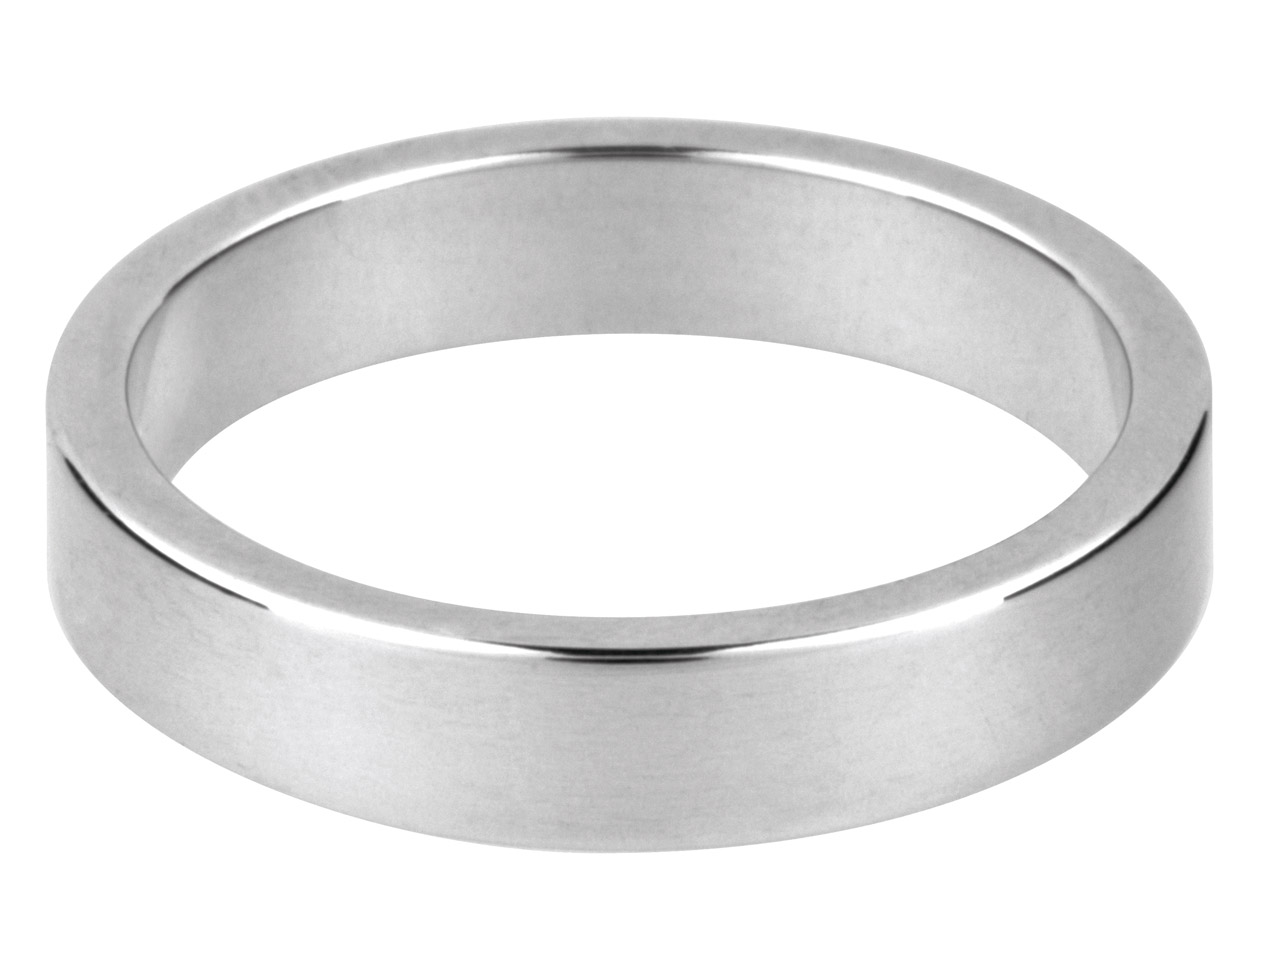 Platinum Flat Wedding Ring 3.0mm I 4.9gms Medium Weight Hallmarked    Wall Thickness 1.41mm